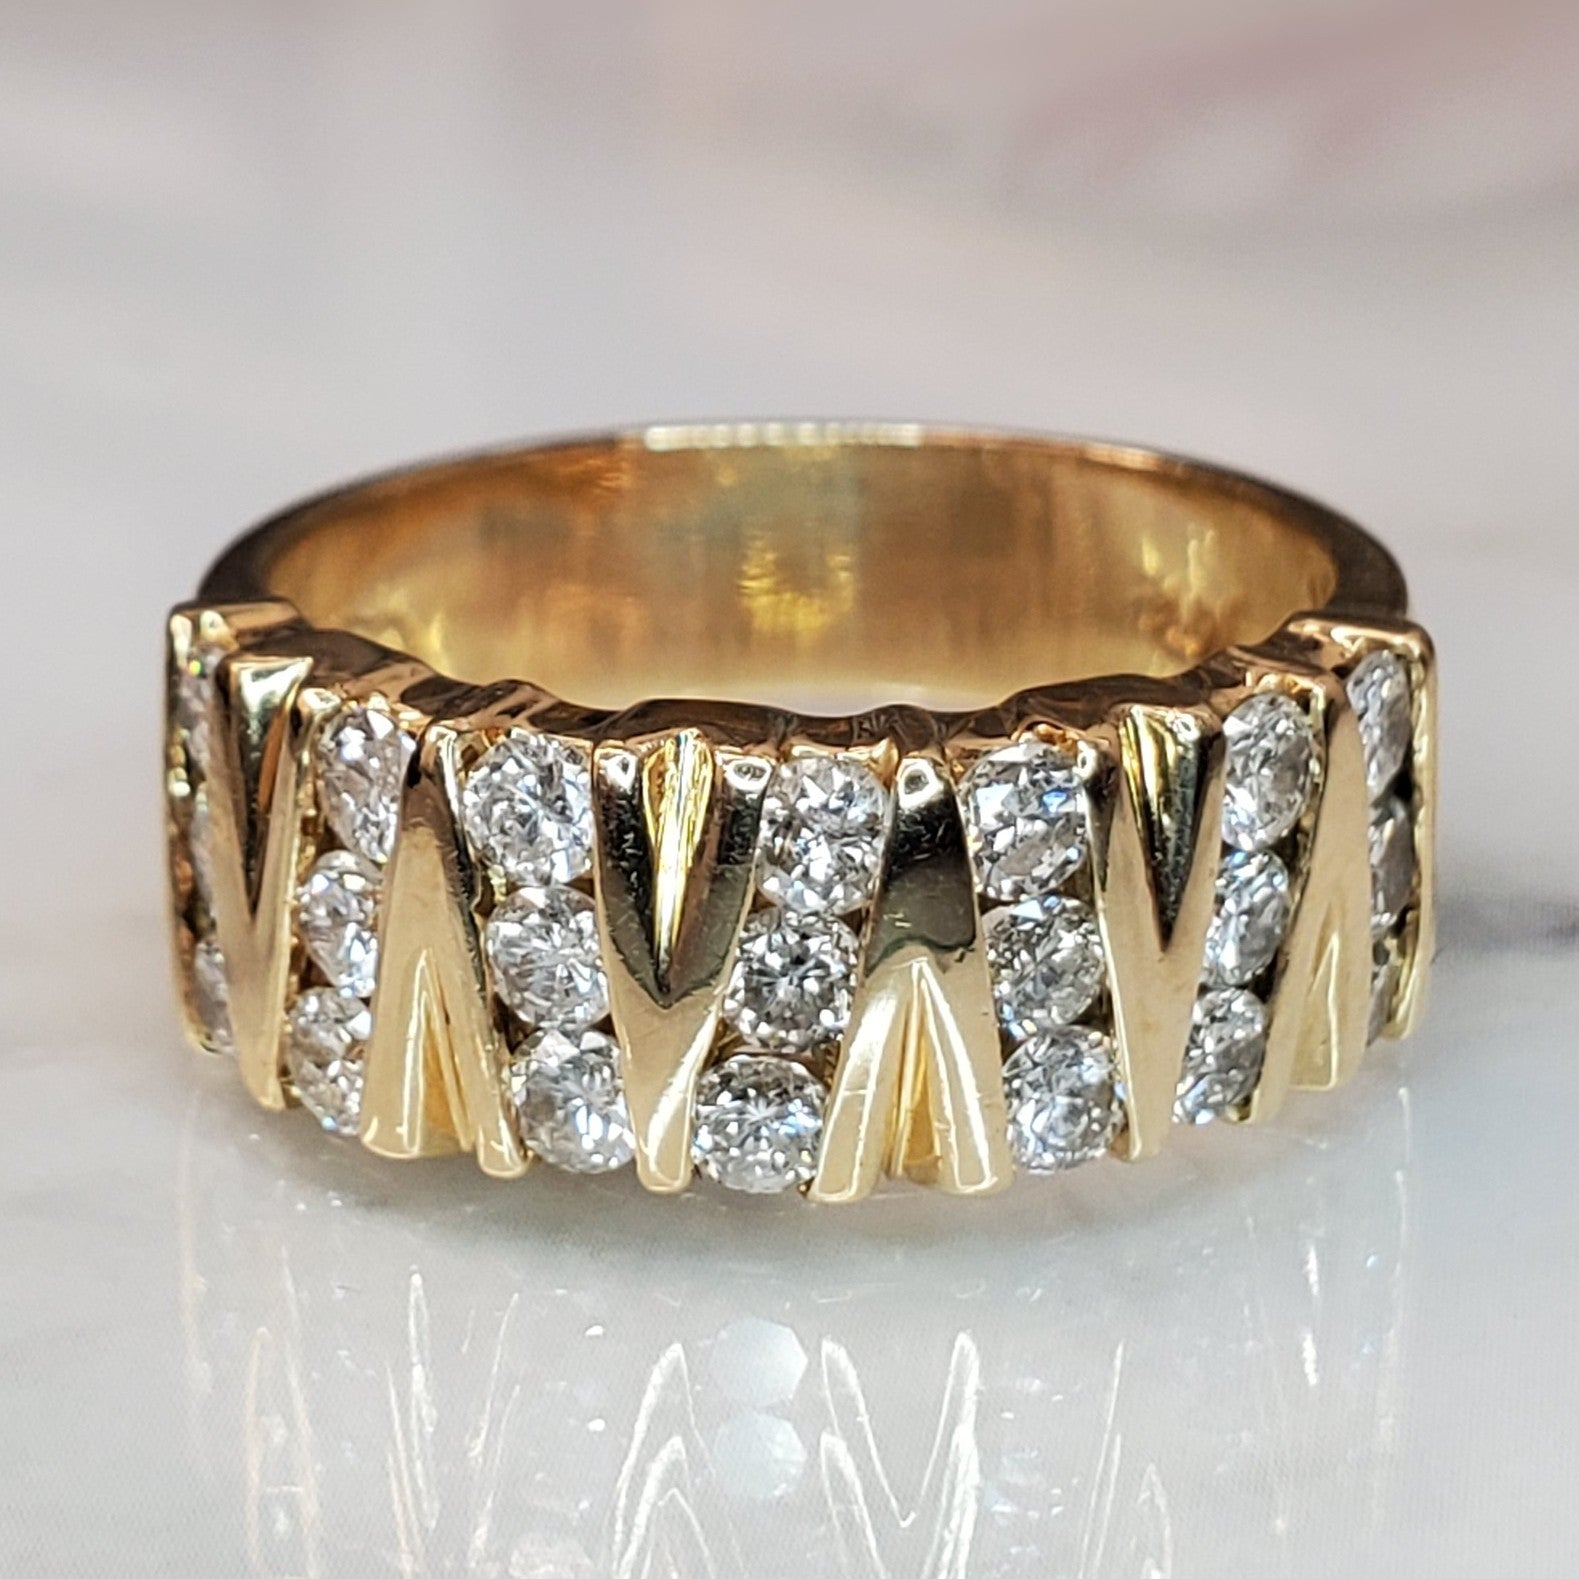 14 karat yellow gold, 0.75 total carat weight, diamond, zig zag pattern, retro design, estate ring